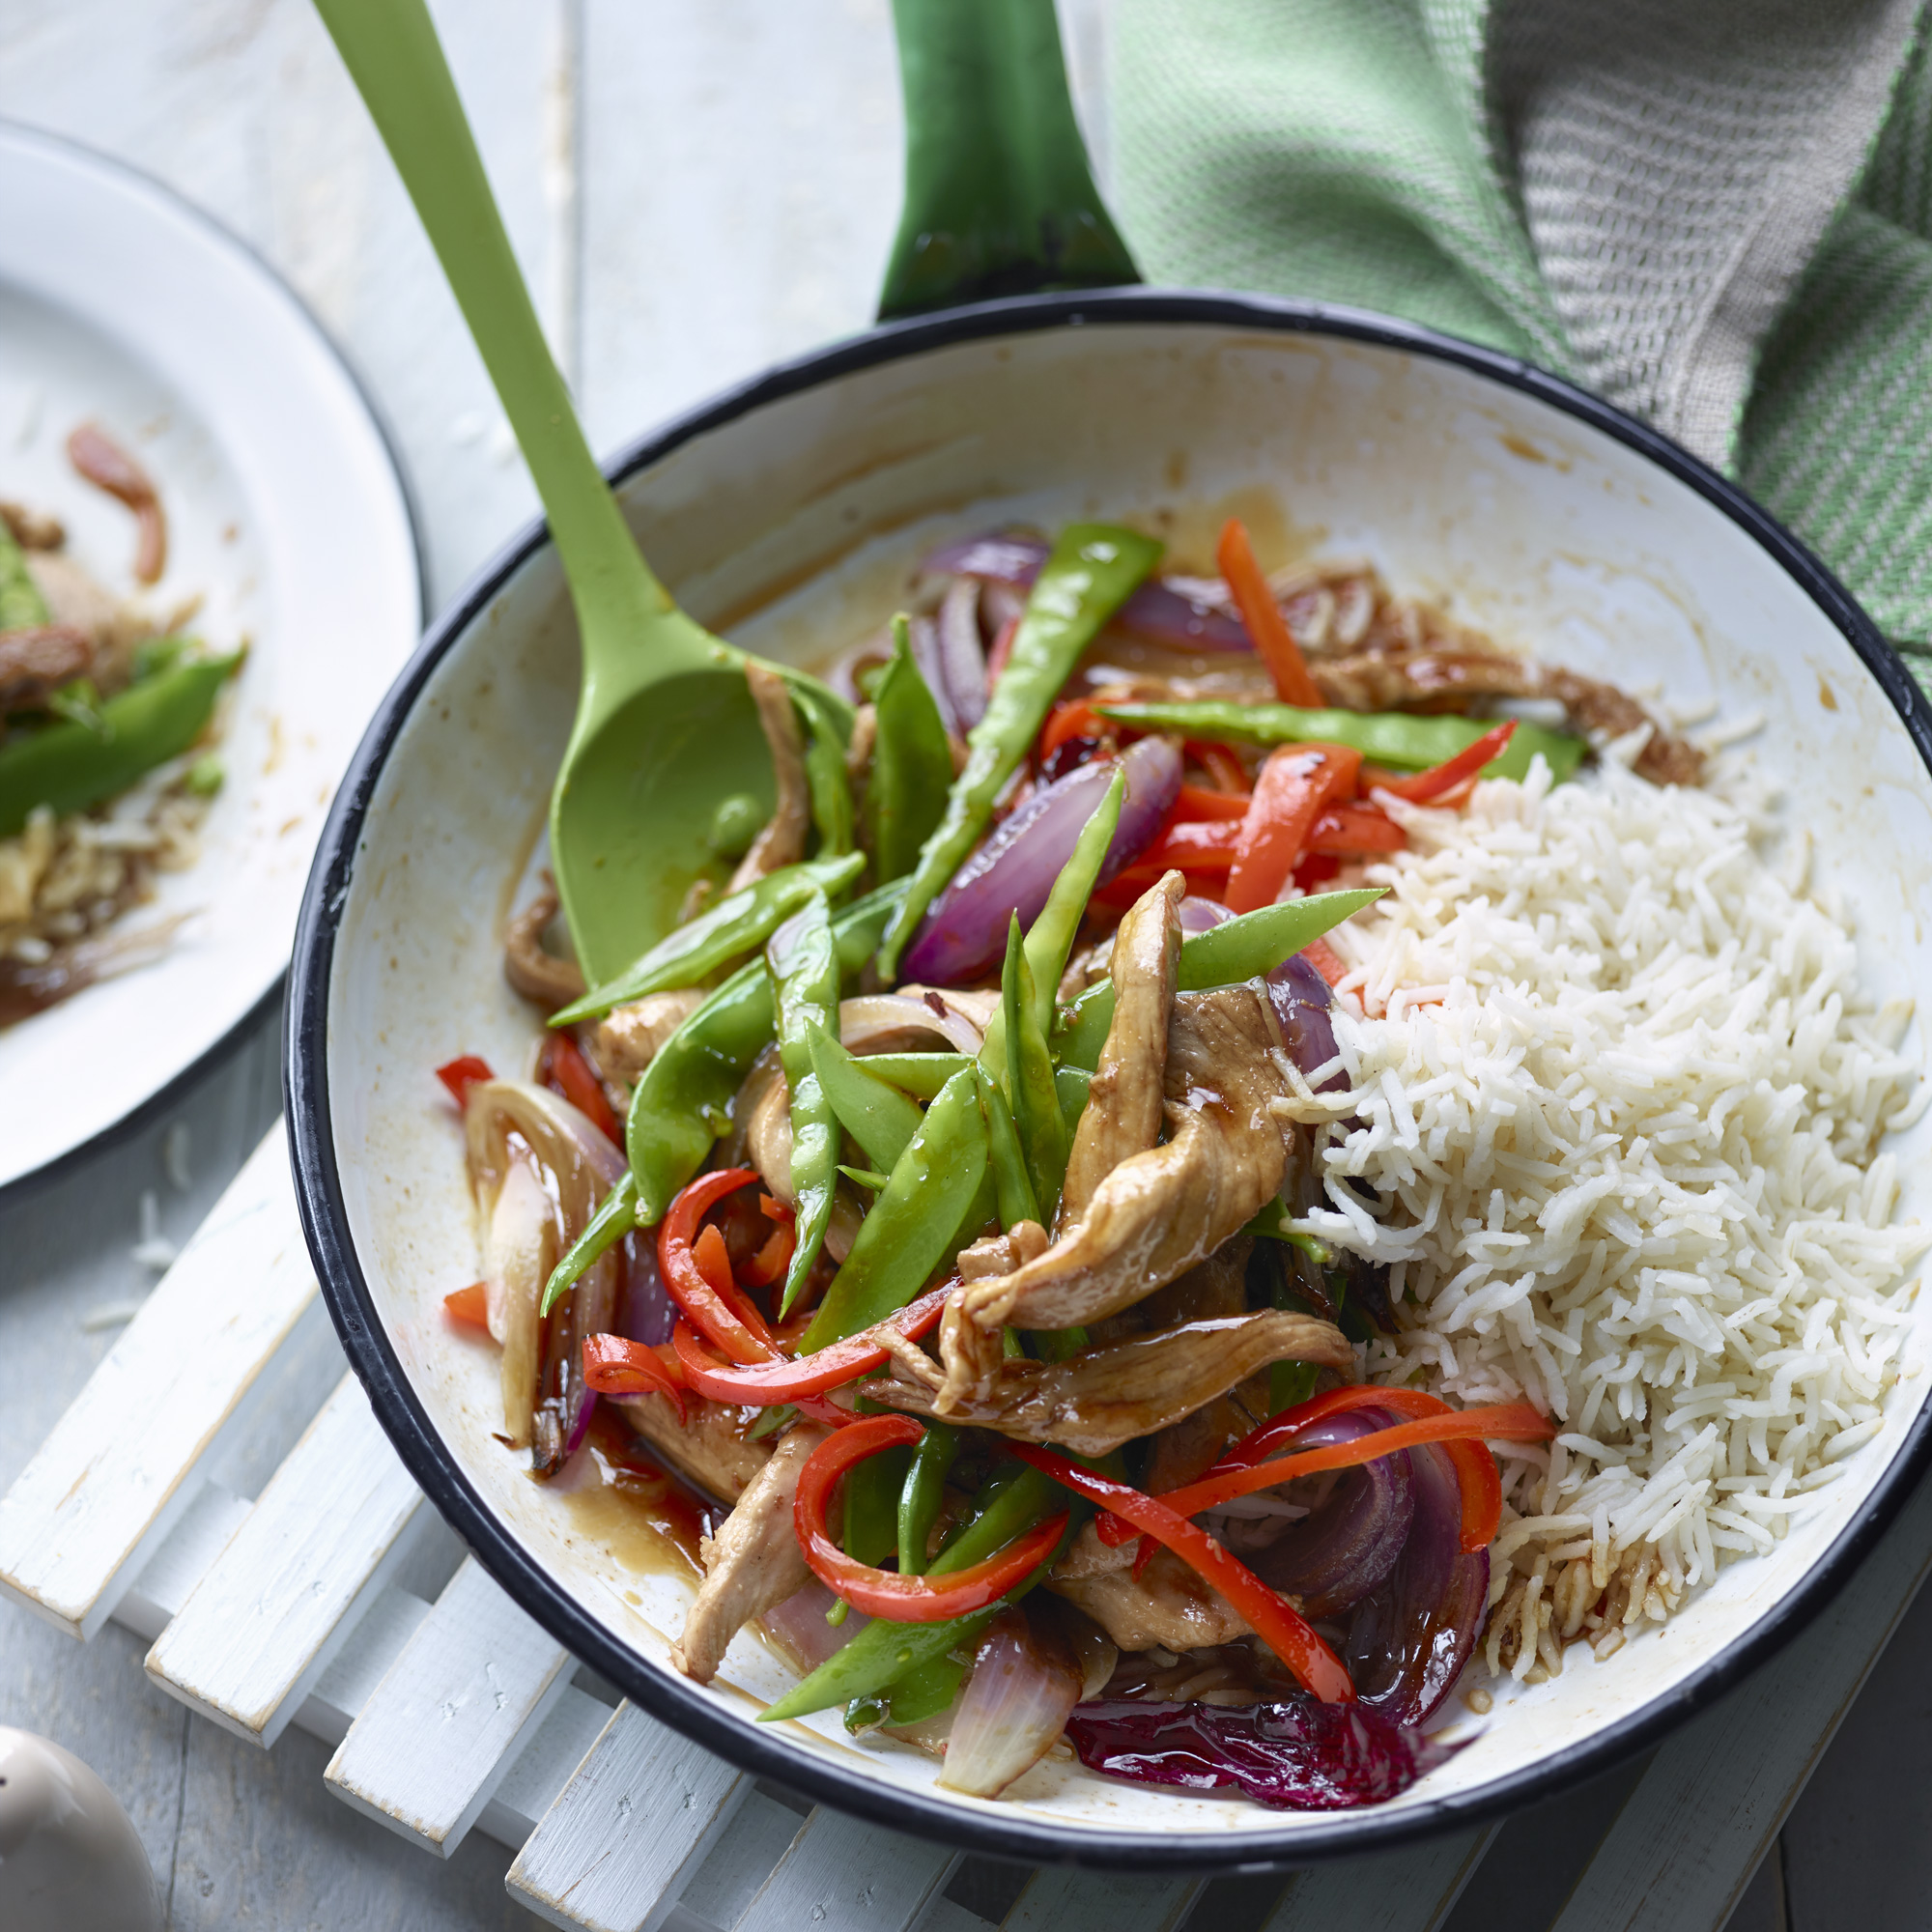 Joe wicks sweet and sour pork with rice forumfinder